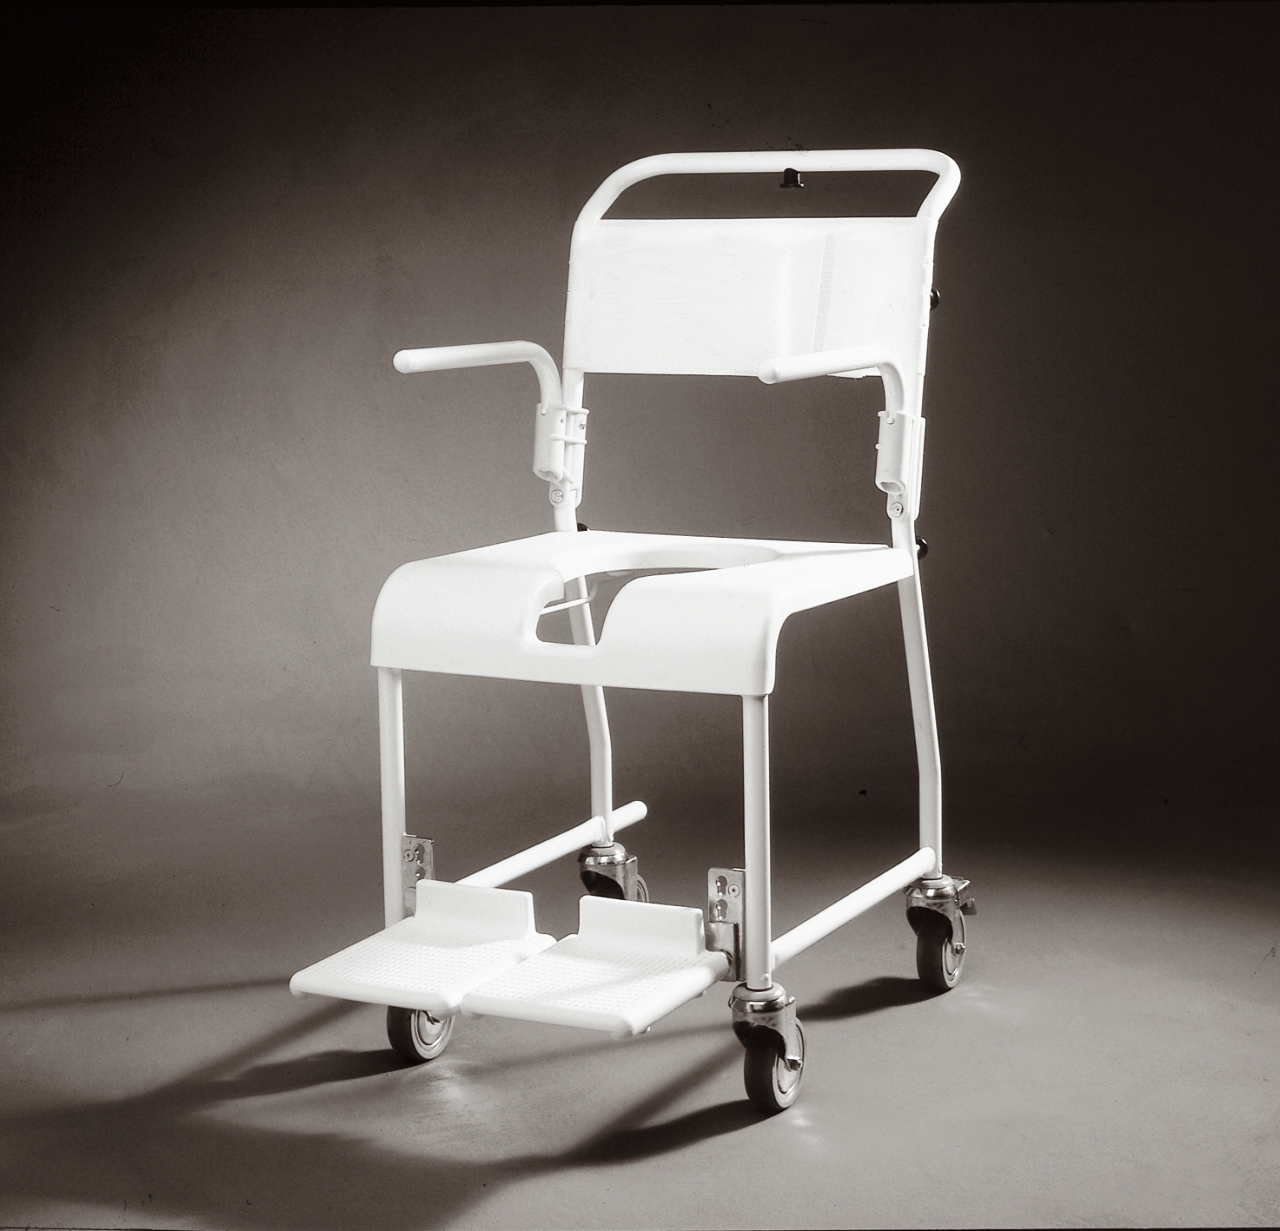 Etac Mobilette shower and toilet chair